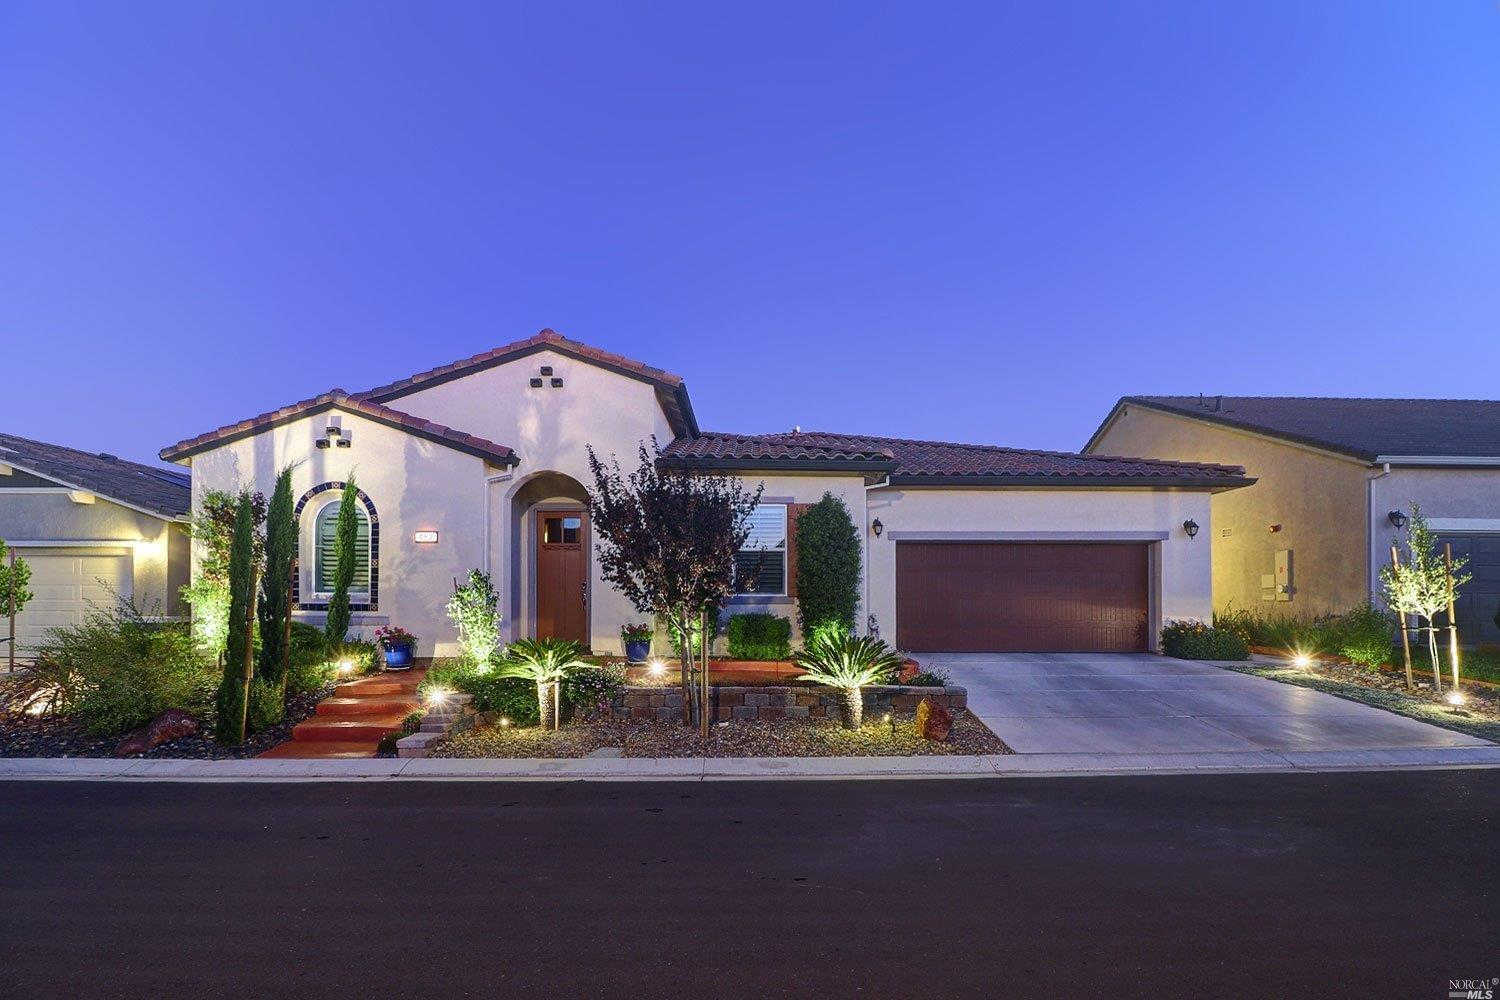 480 Belvedere Drive, Rio Vista, CA 94571 has an Open House on  Sunday, October 13, 2019 1:00 PM to 4:00 PM